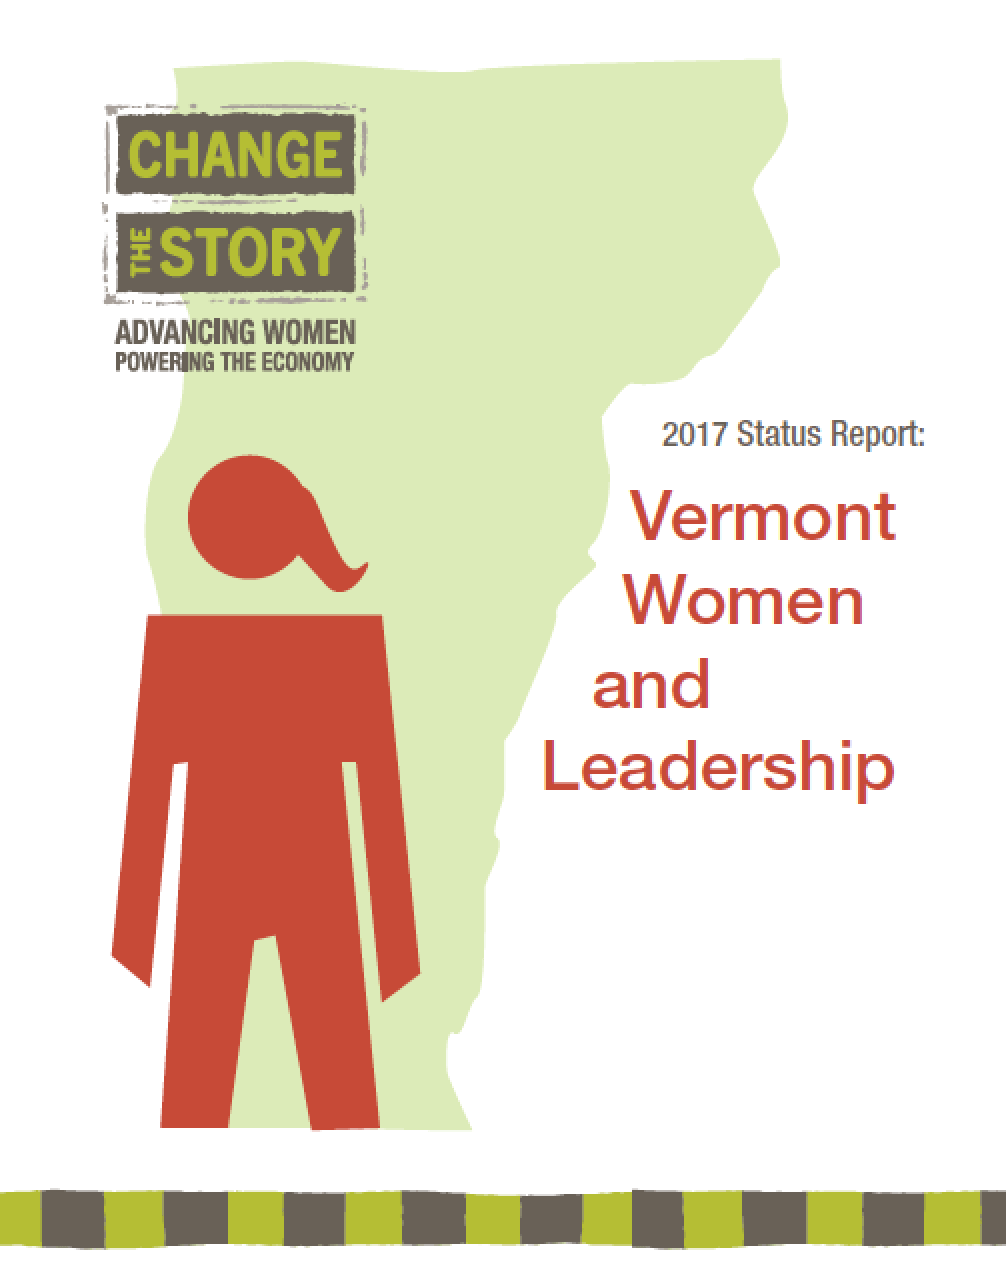 2017 Status Report: Vermont Women and Leadership